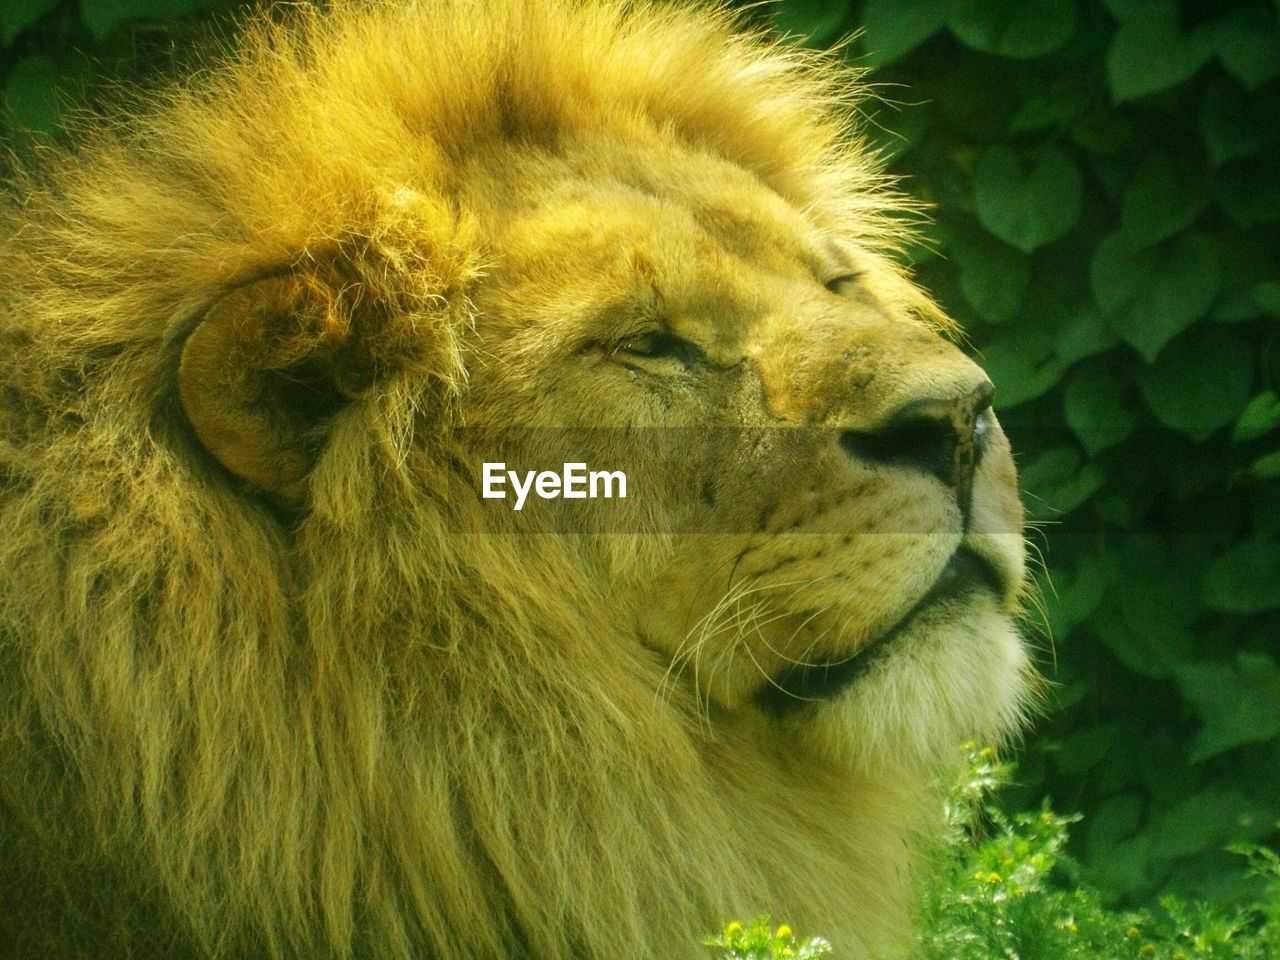 one animal, animal, animal themes, mammal, feline, animals in the wild, cat, lion - feline, animal wildlife, close-up, animal body part, vertebrate, animal head, no people, day, focus on foreground, domestic animals, big cat, looking, whisker